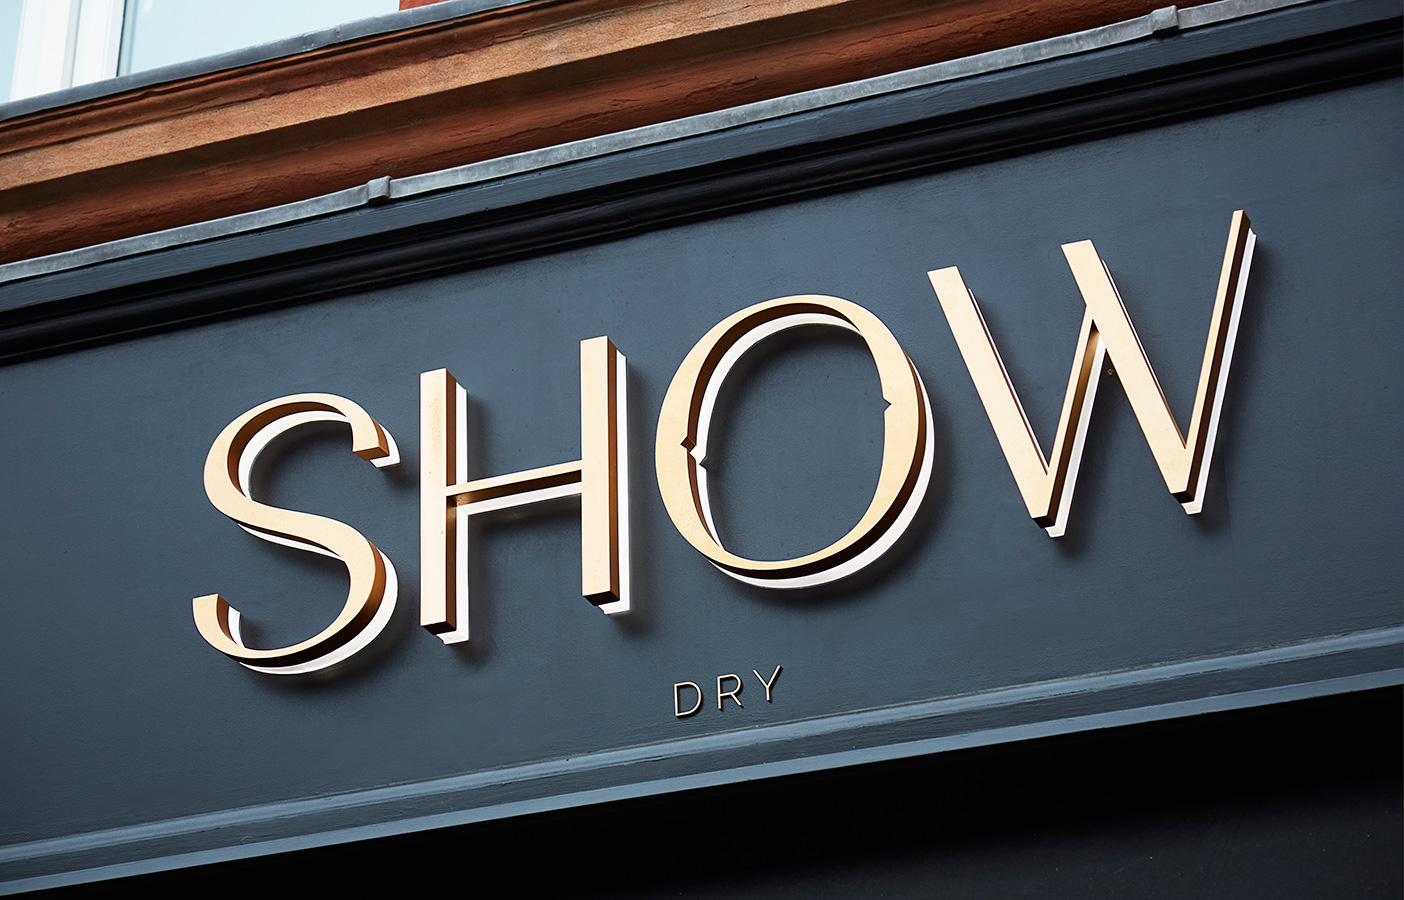 Aldworth James & Bond | SHOW Dry Wimbledon exterior signage